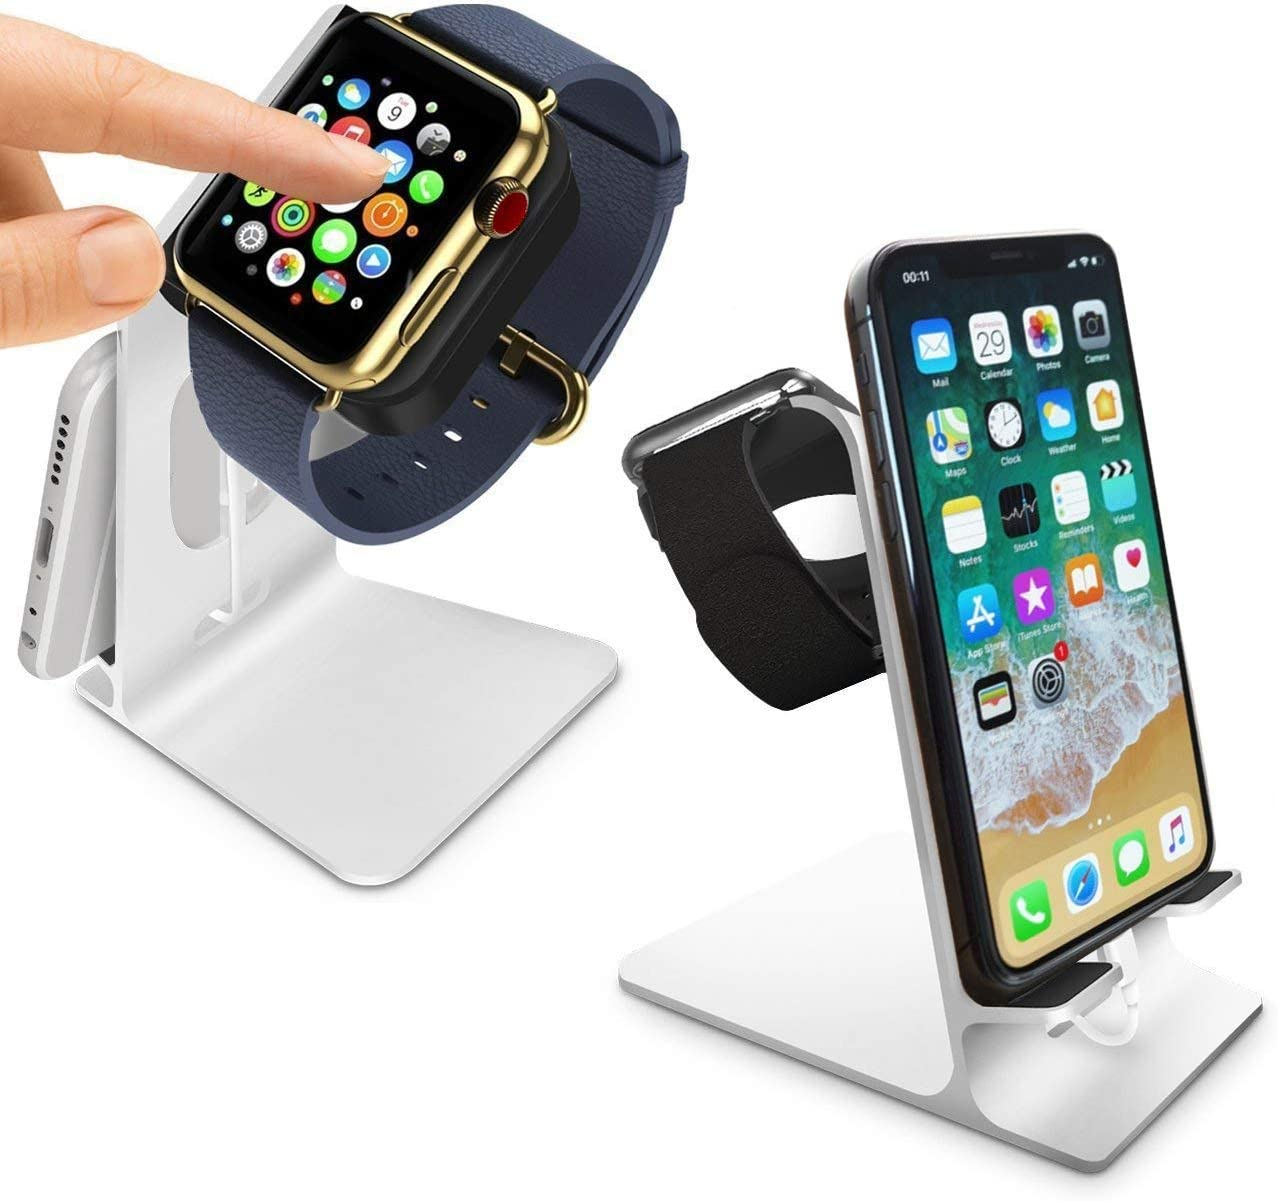 Orzly Duo Stand for Apple Watch - Aluminium Desk Stand Becomes a Fully Functional Charging Dock for Both AppleWatch & iPhone Simultaneously (Grommet Charger & Lightning Cable not Included) - Silver